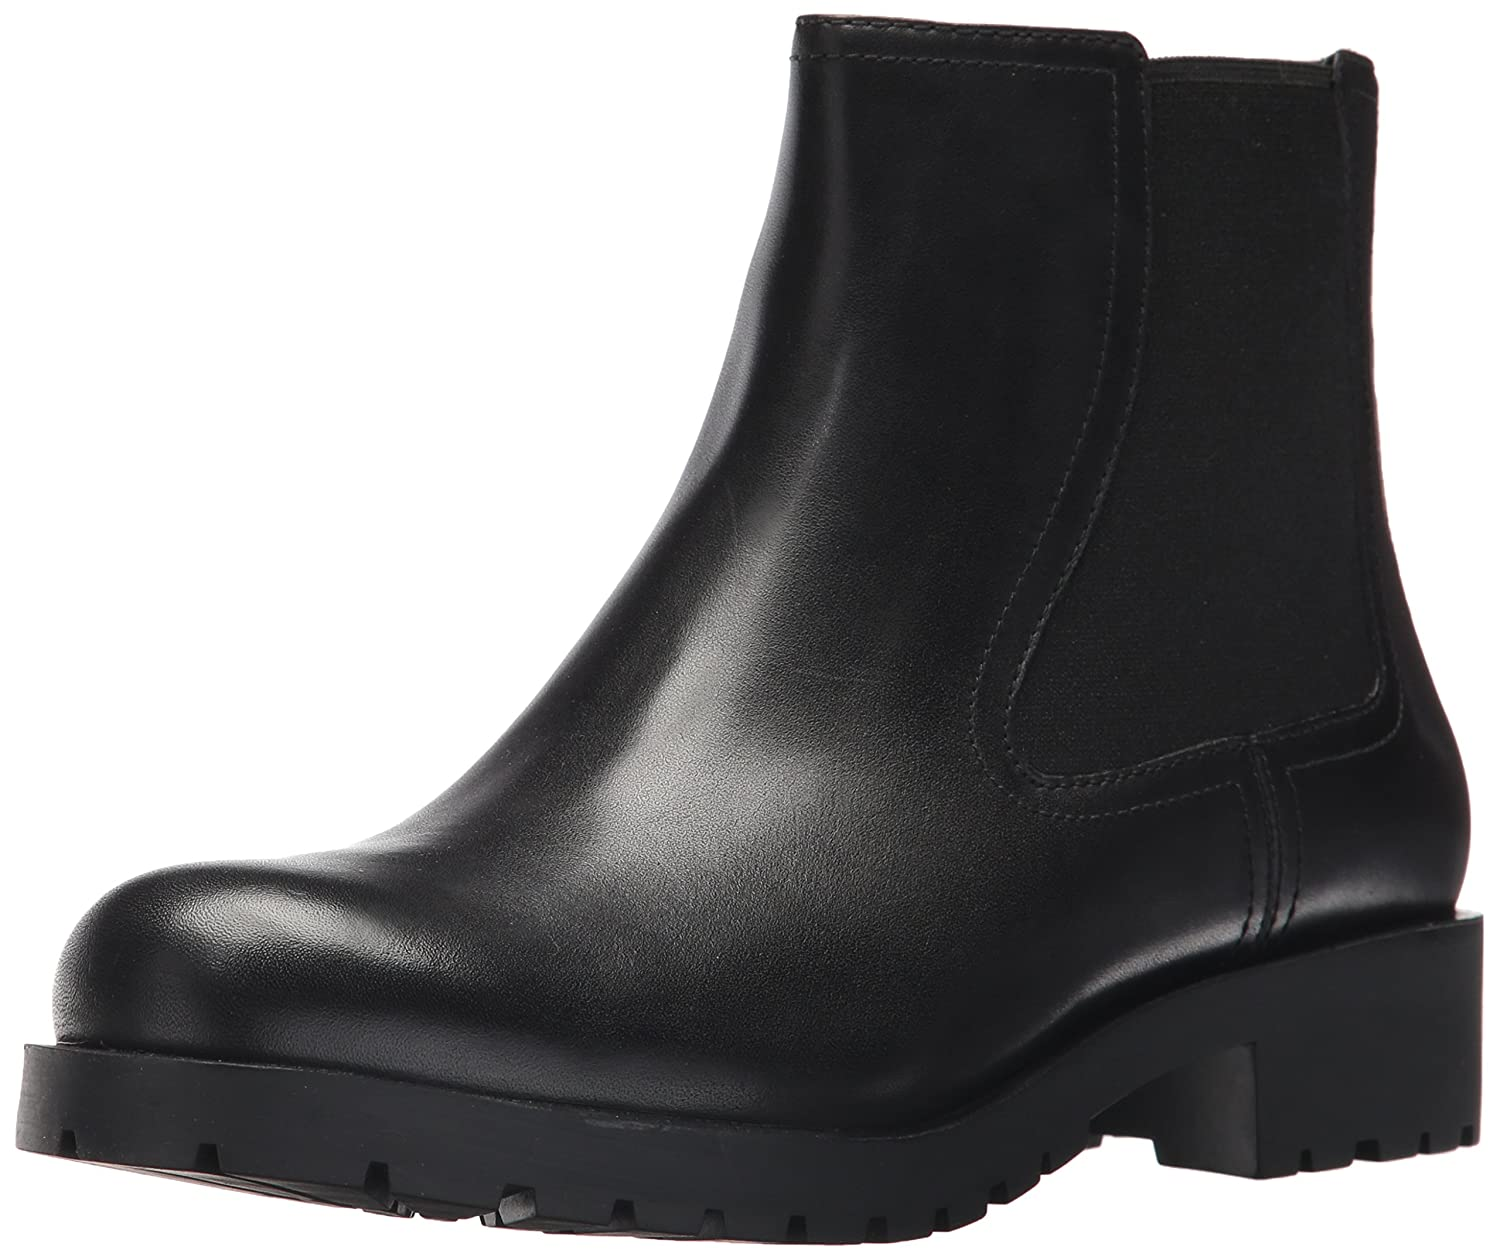 Black Cole Haan Womens Stanton Waterproof Bootie Ankle Boot